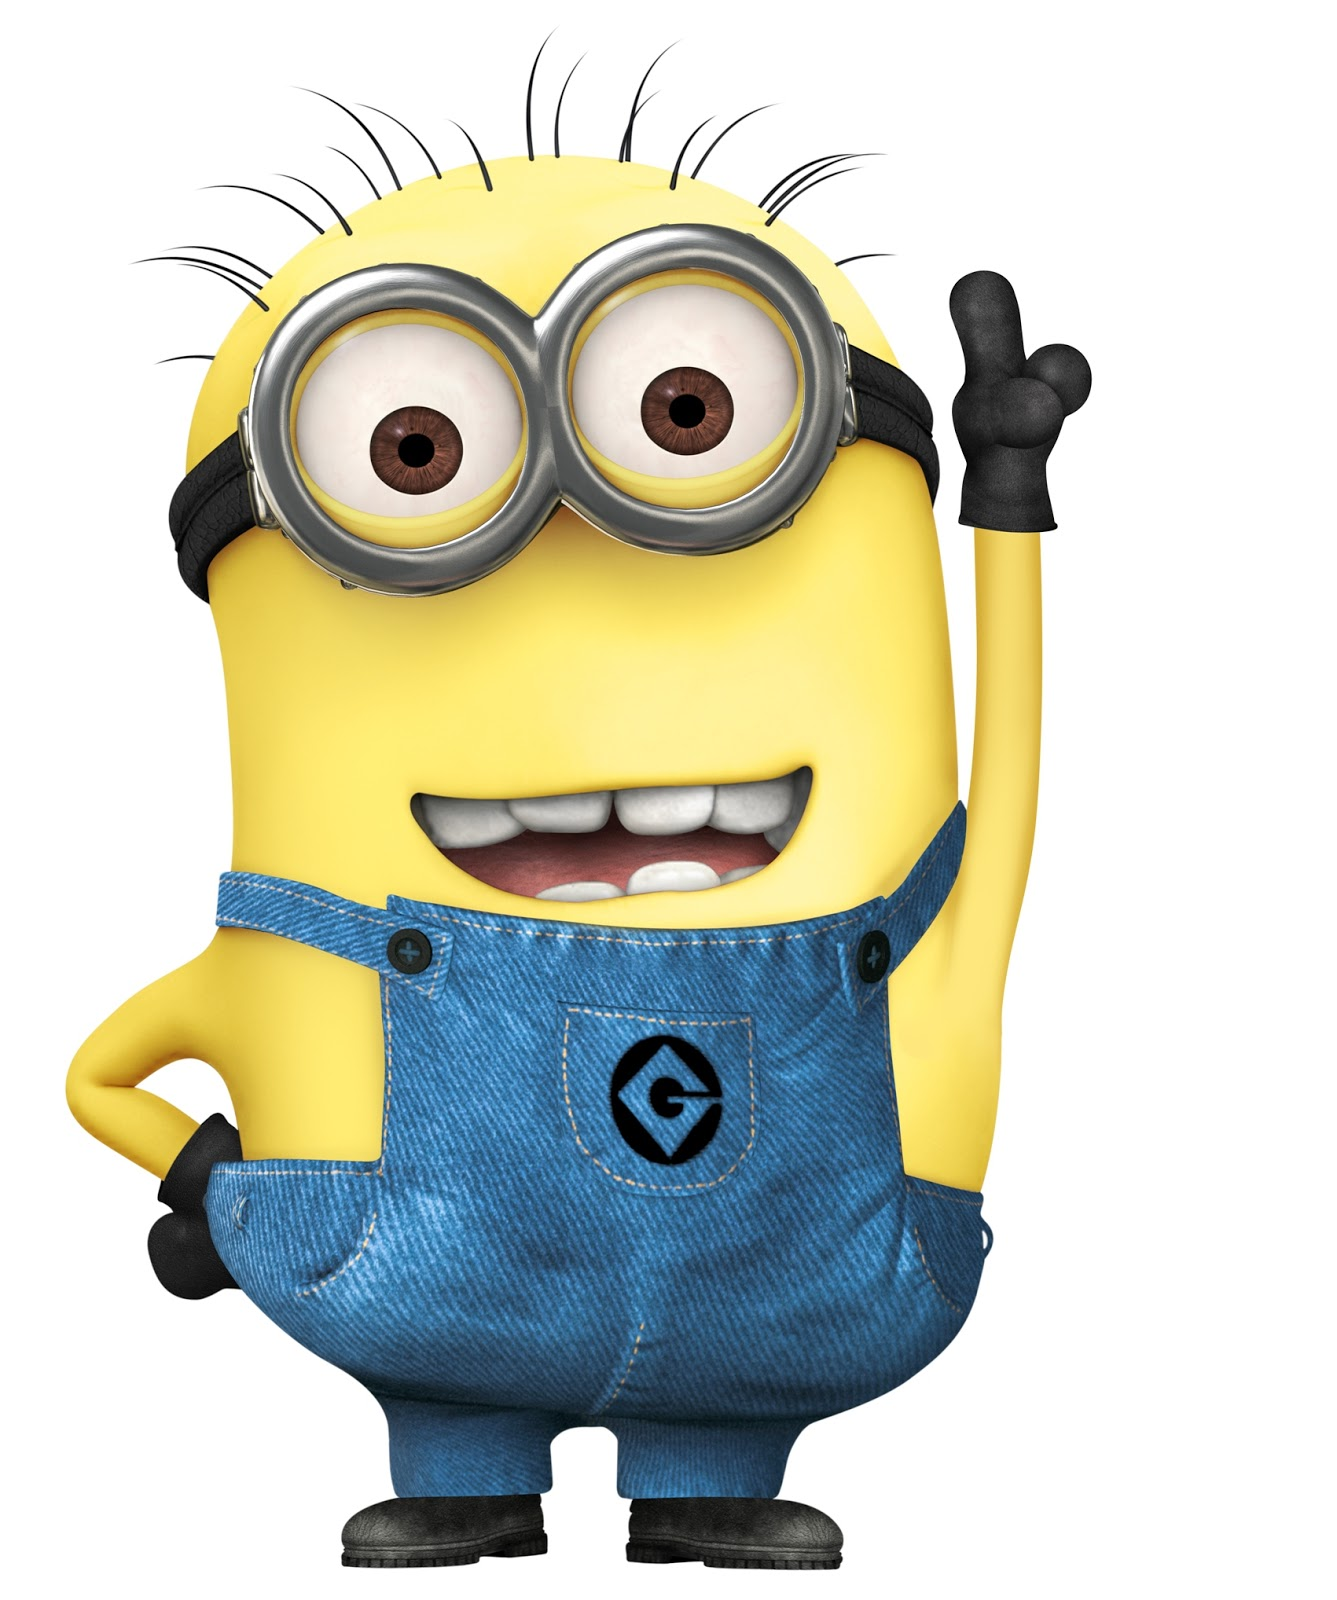 Leadership Lessons to Learn From The Minions